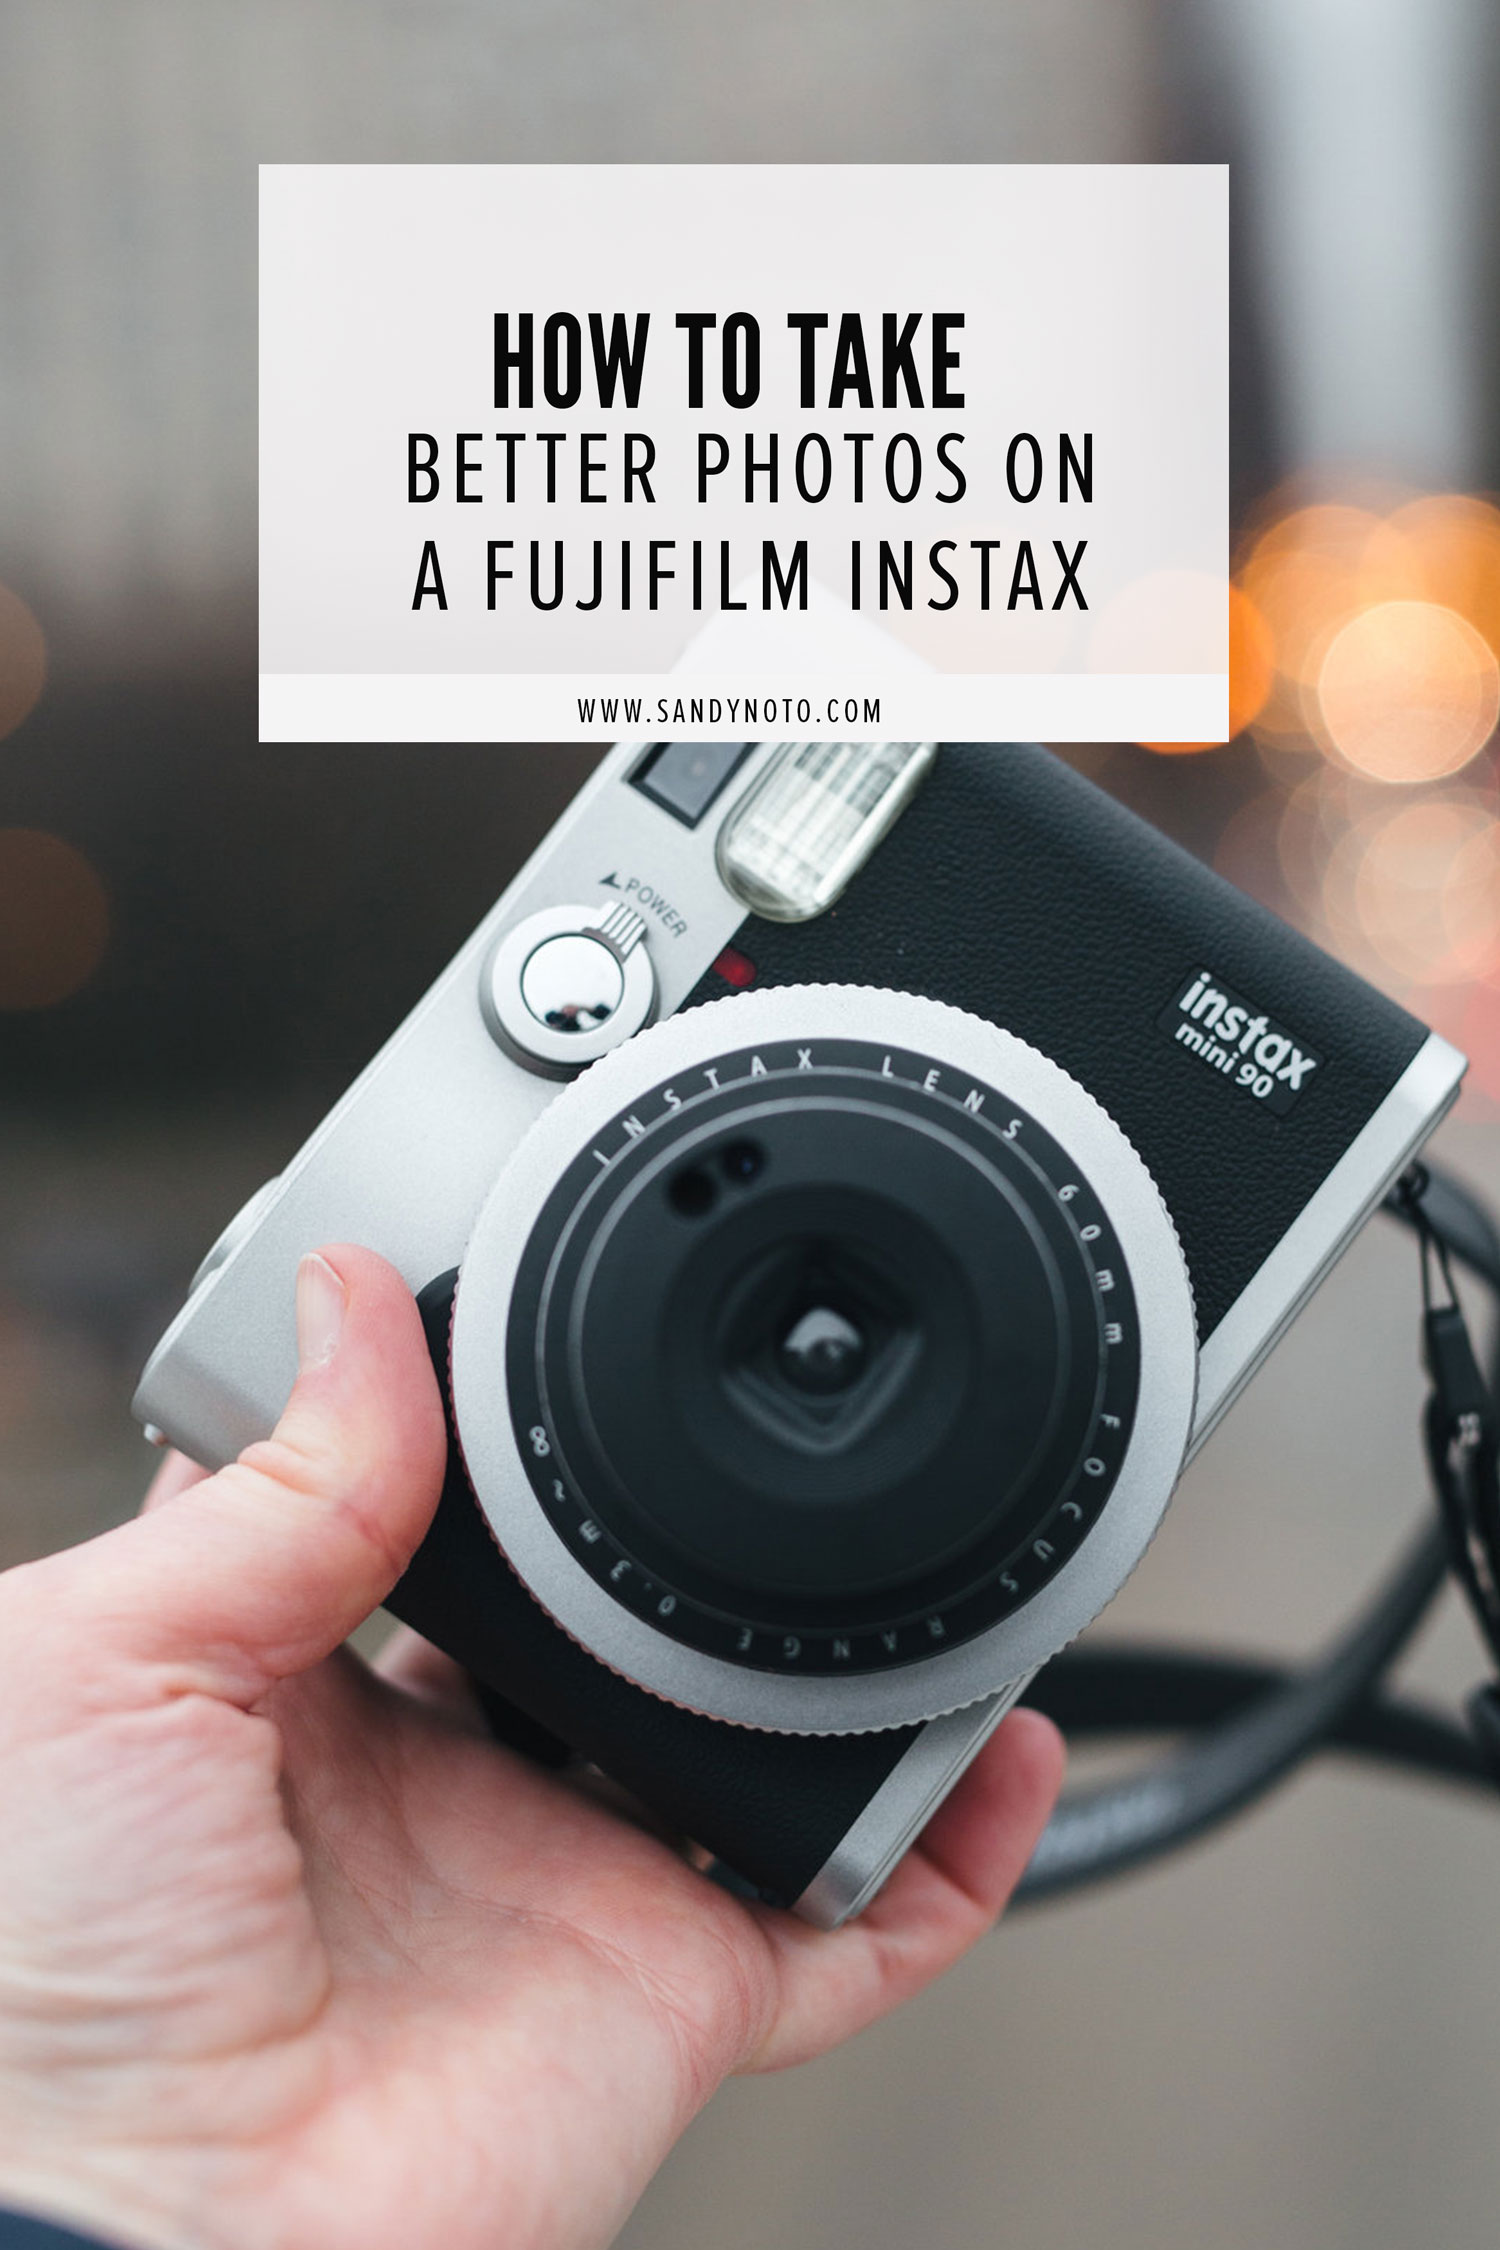 How to take better photos on a fujifilm instax